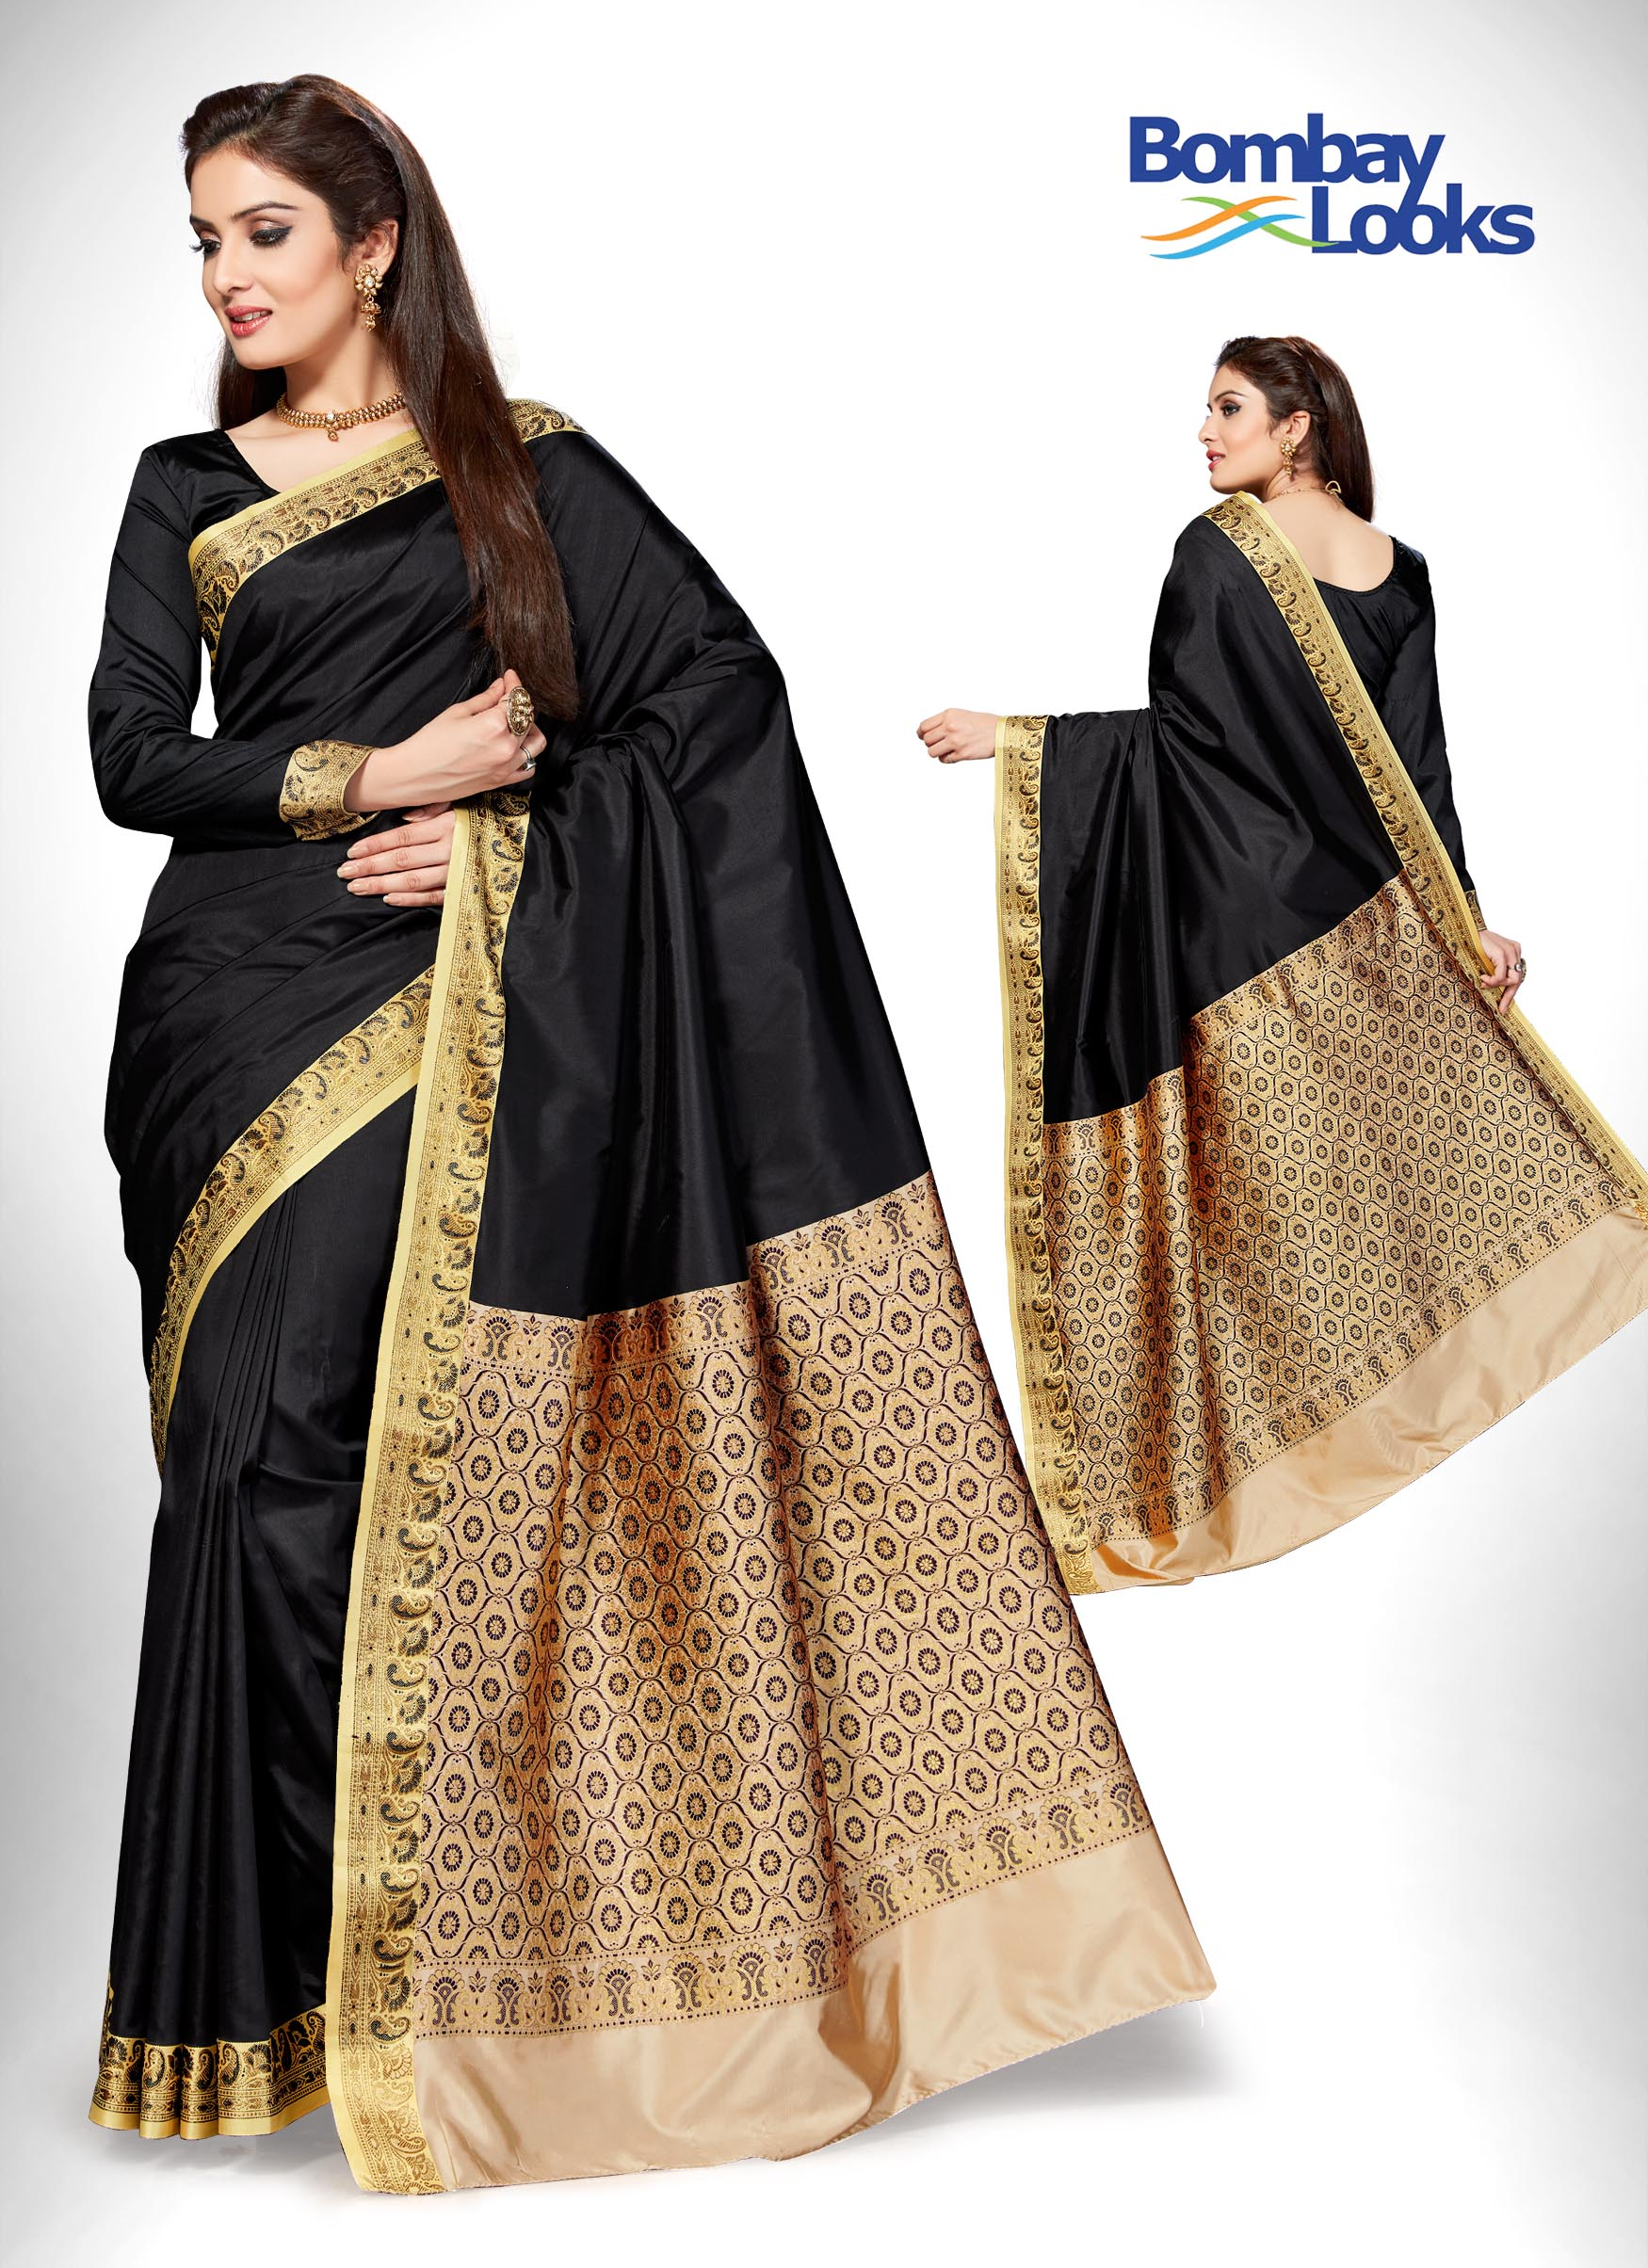 Raven black Banarasi saree with gold intricate border